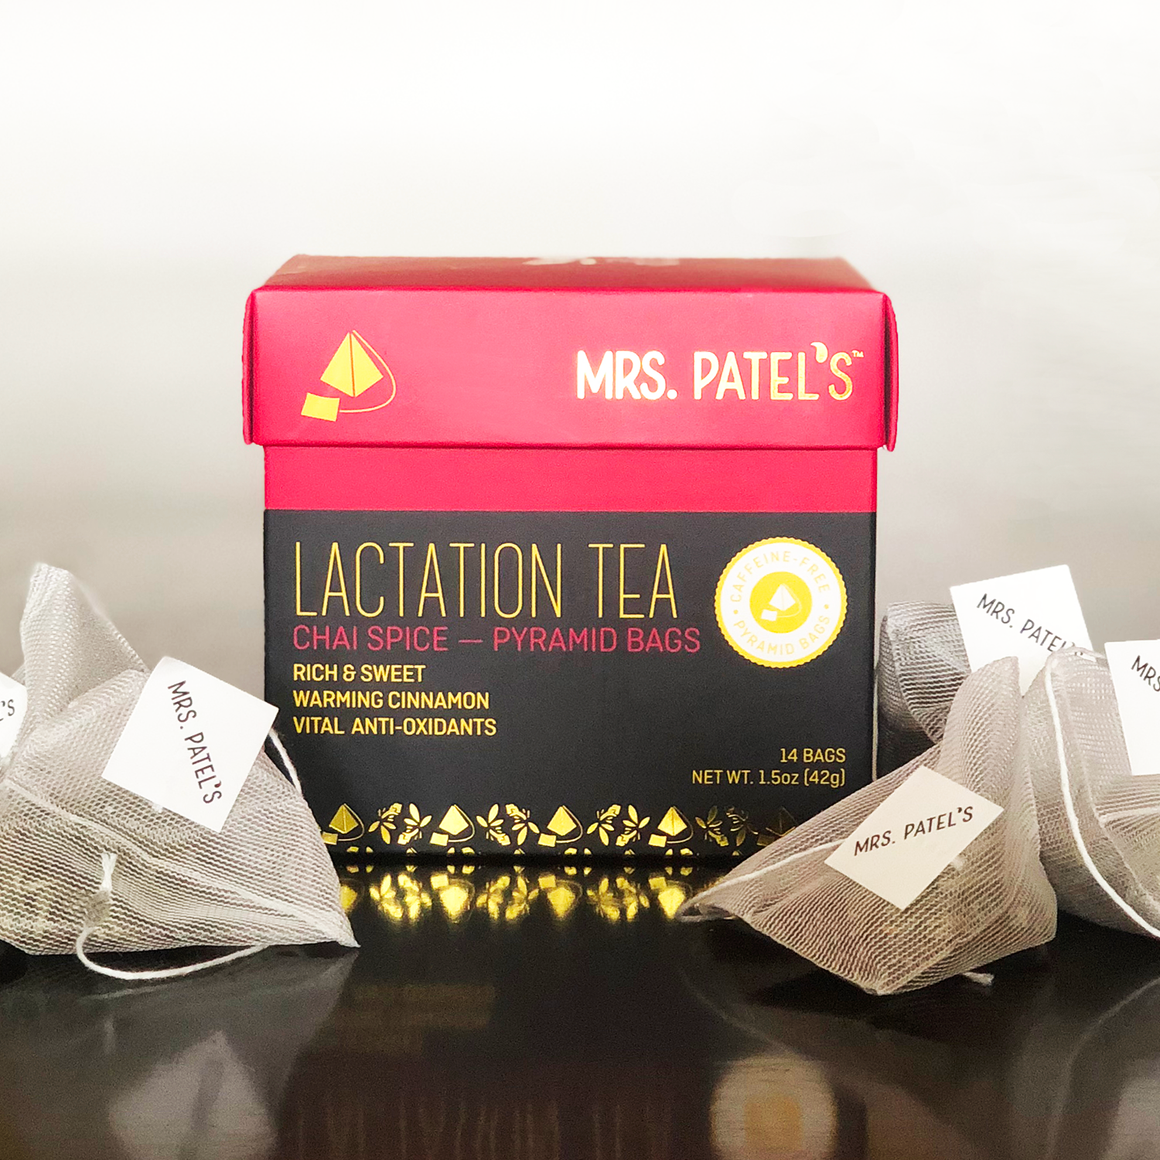 Lactation Tea - Chai Spice